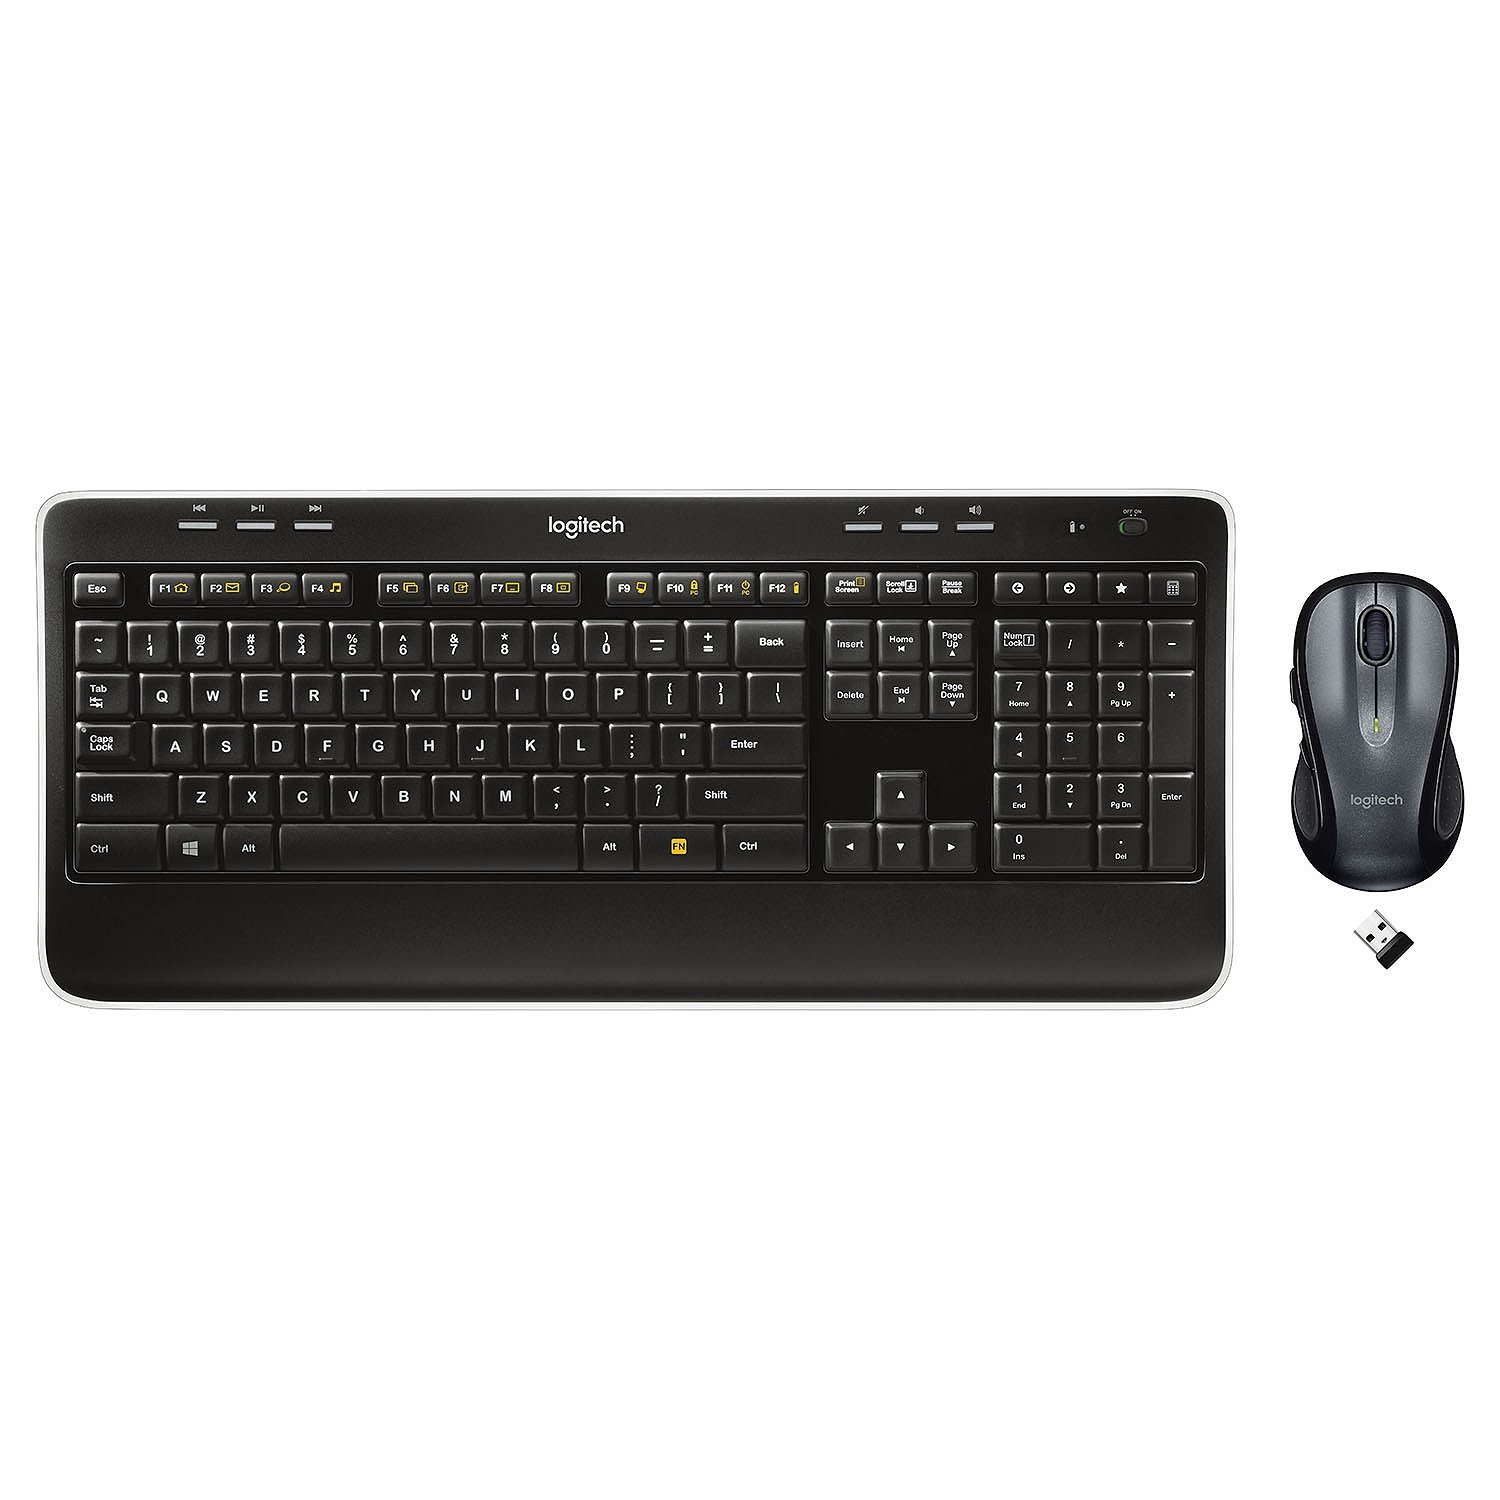 Logitech MK530 Advanced Keyboard and Mouse Bundle